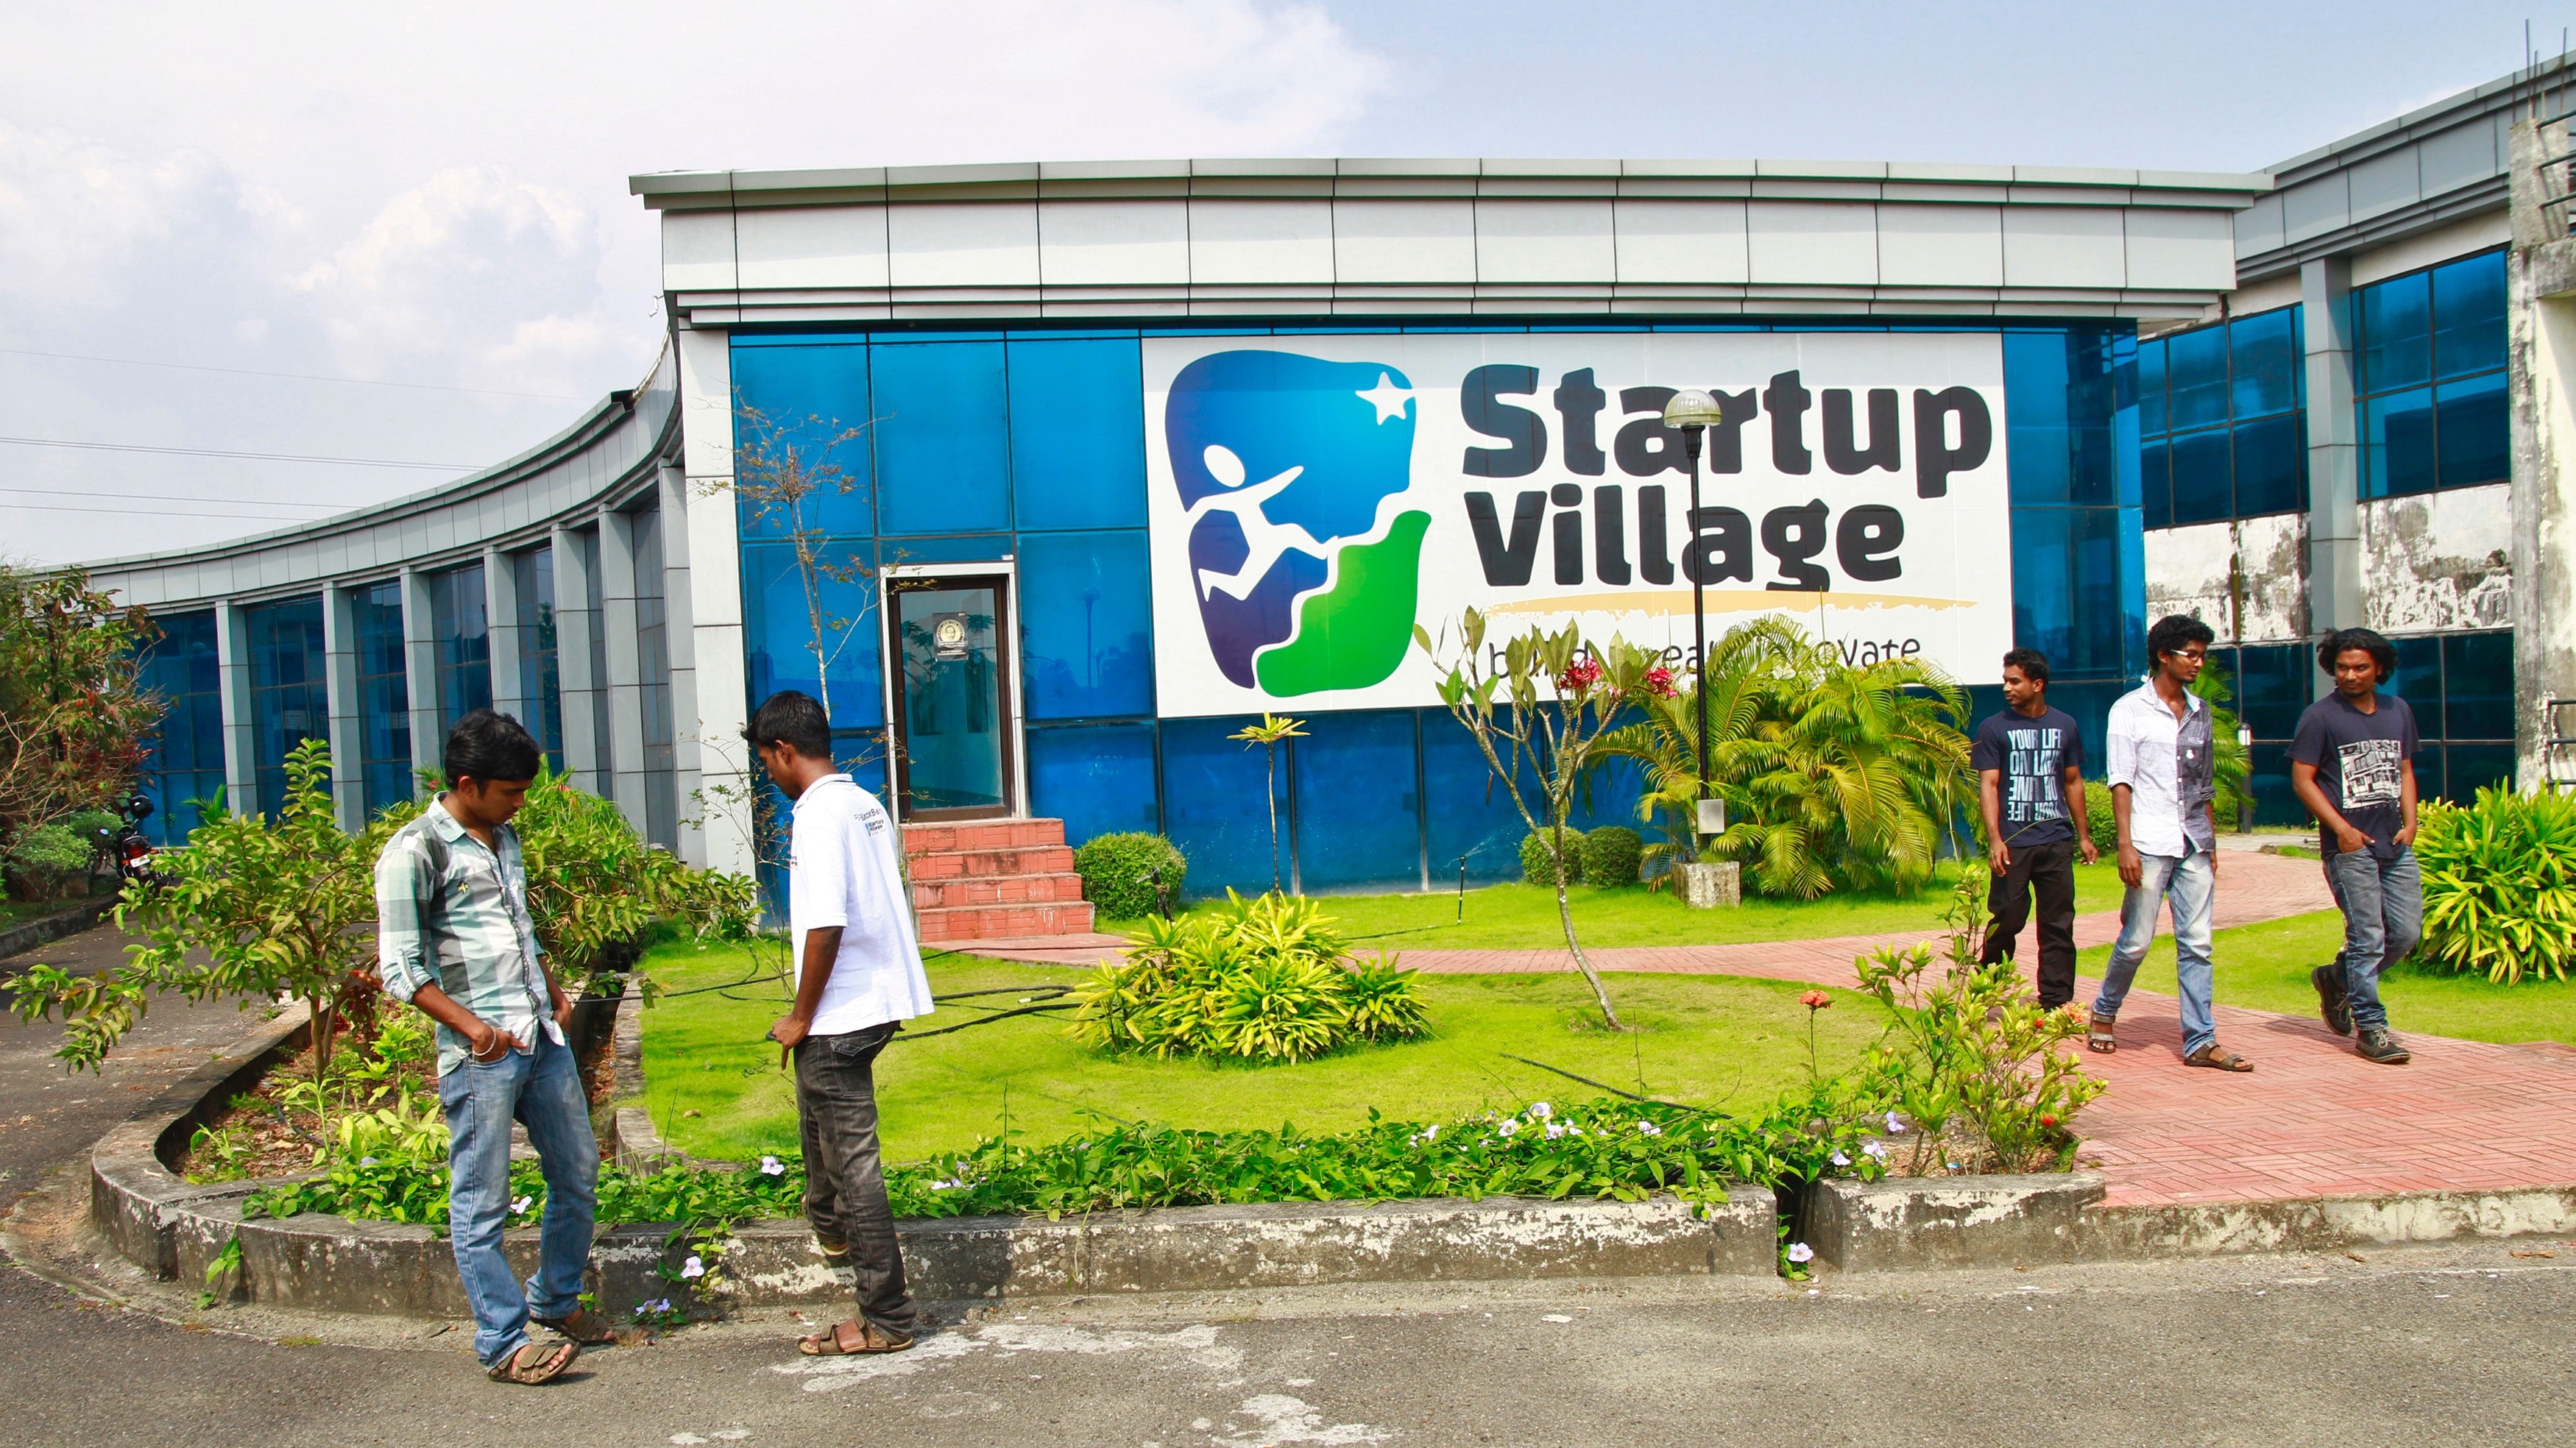 Employees stand outside the Start-up Village in Kinfra High Tech Park in the southern Indian city of Kochi October 13, 2012. Three decades after Infosys, India's second-largest software service provider, was founded by middle-class engineers, the country has failed to create an enabling environment for first-generation entrepreneurs. Startup Village wants to break the logjam by helping engineers develop 1,000 Internet and mobile companies in the next 10 years. It provides its members with office space, guidance and a chance to hobnob with the stars of the tech industry. But critics say this may not even be the beginning of a game-changer unless India deals with a host of other impediments - from red tape to a lack of innovation and a dearth of investors - that are blocking entrepreneurship in Asia's third-largest economy. To match Feature INDIA-TECHVILLAGE/ Picture taken October 13, 2012. REUTERS/Sivaram V (INDIA - Tags: BUSINESS SCIENCE TECHNOLOGY EMPLOYMENT) - RTR3B6E0